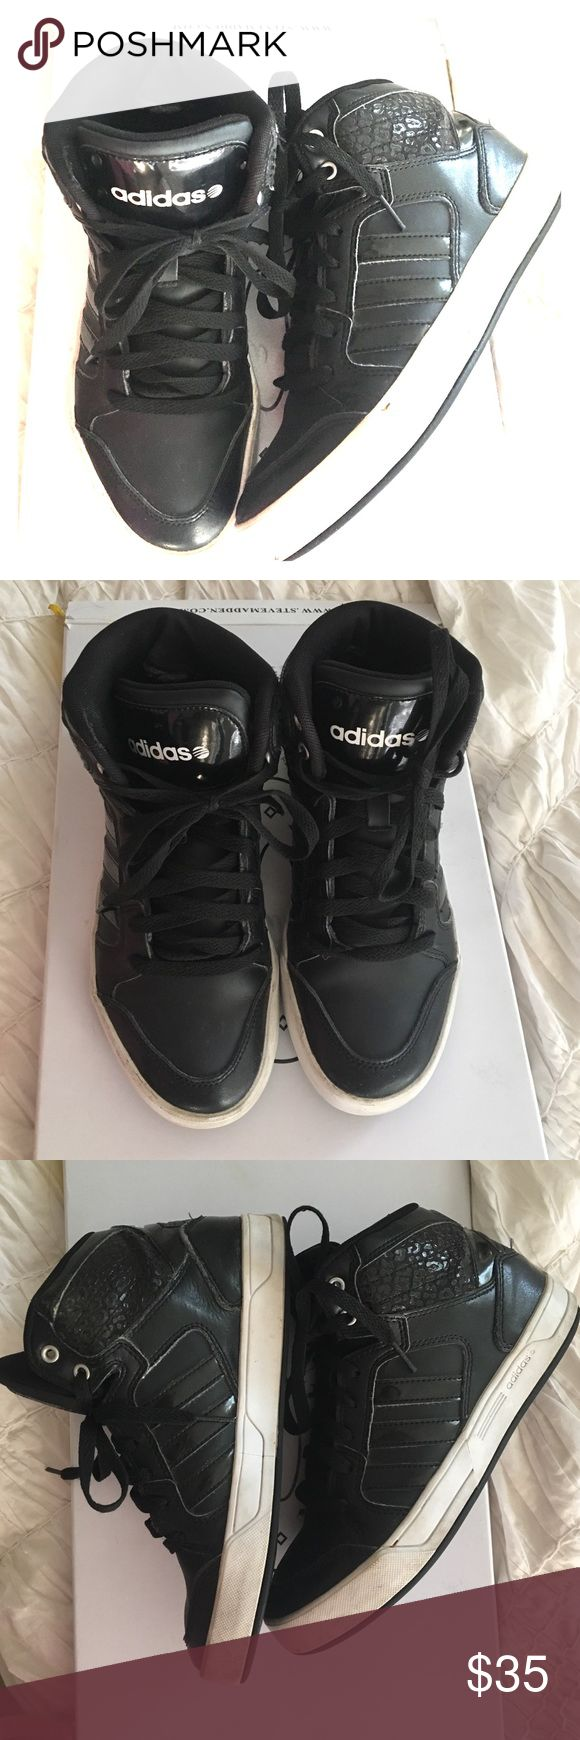 Adidas Neo Black High Top Adidas black high top sneakers Adidas Shoes Sneakers